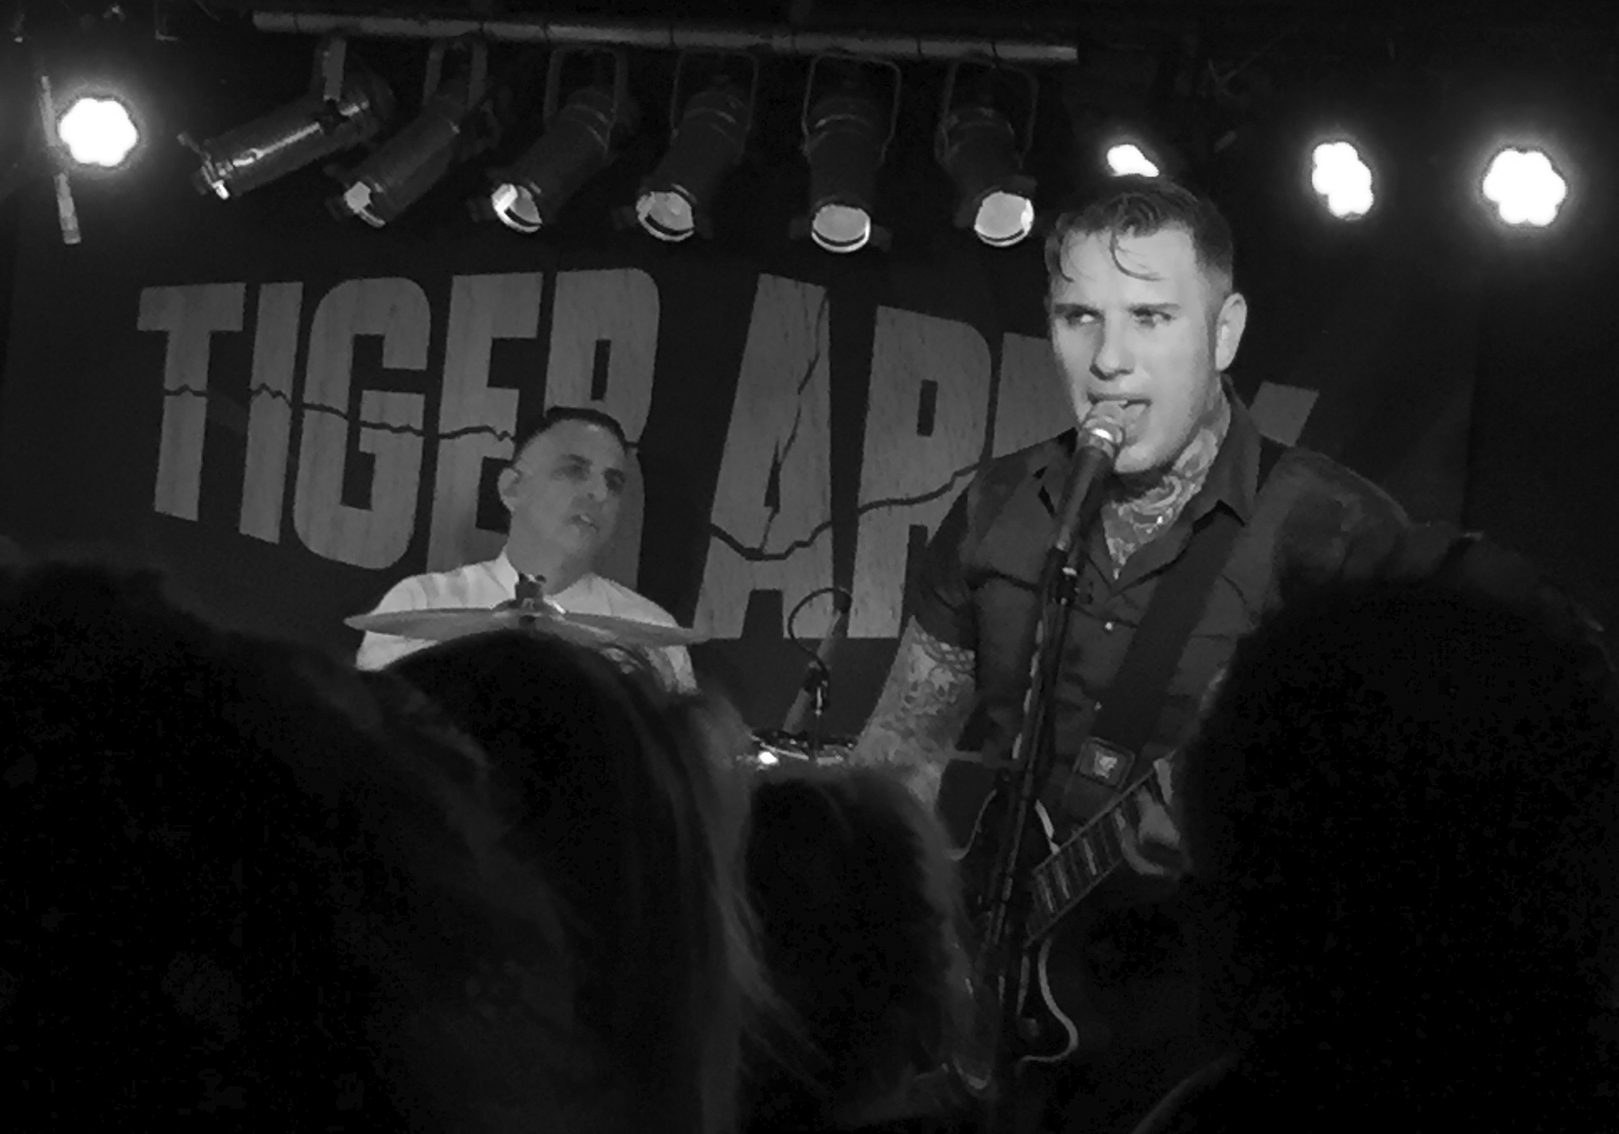 Tiger_Army_LOGO_ShredderMag